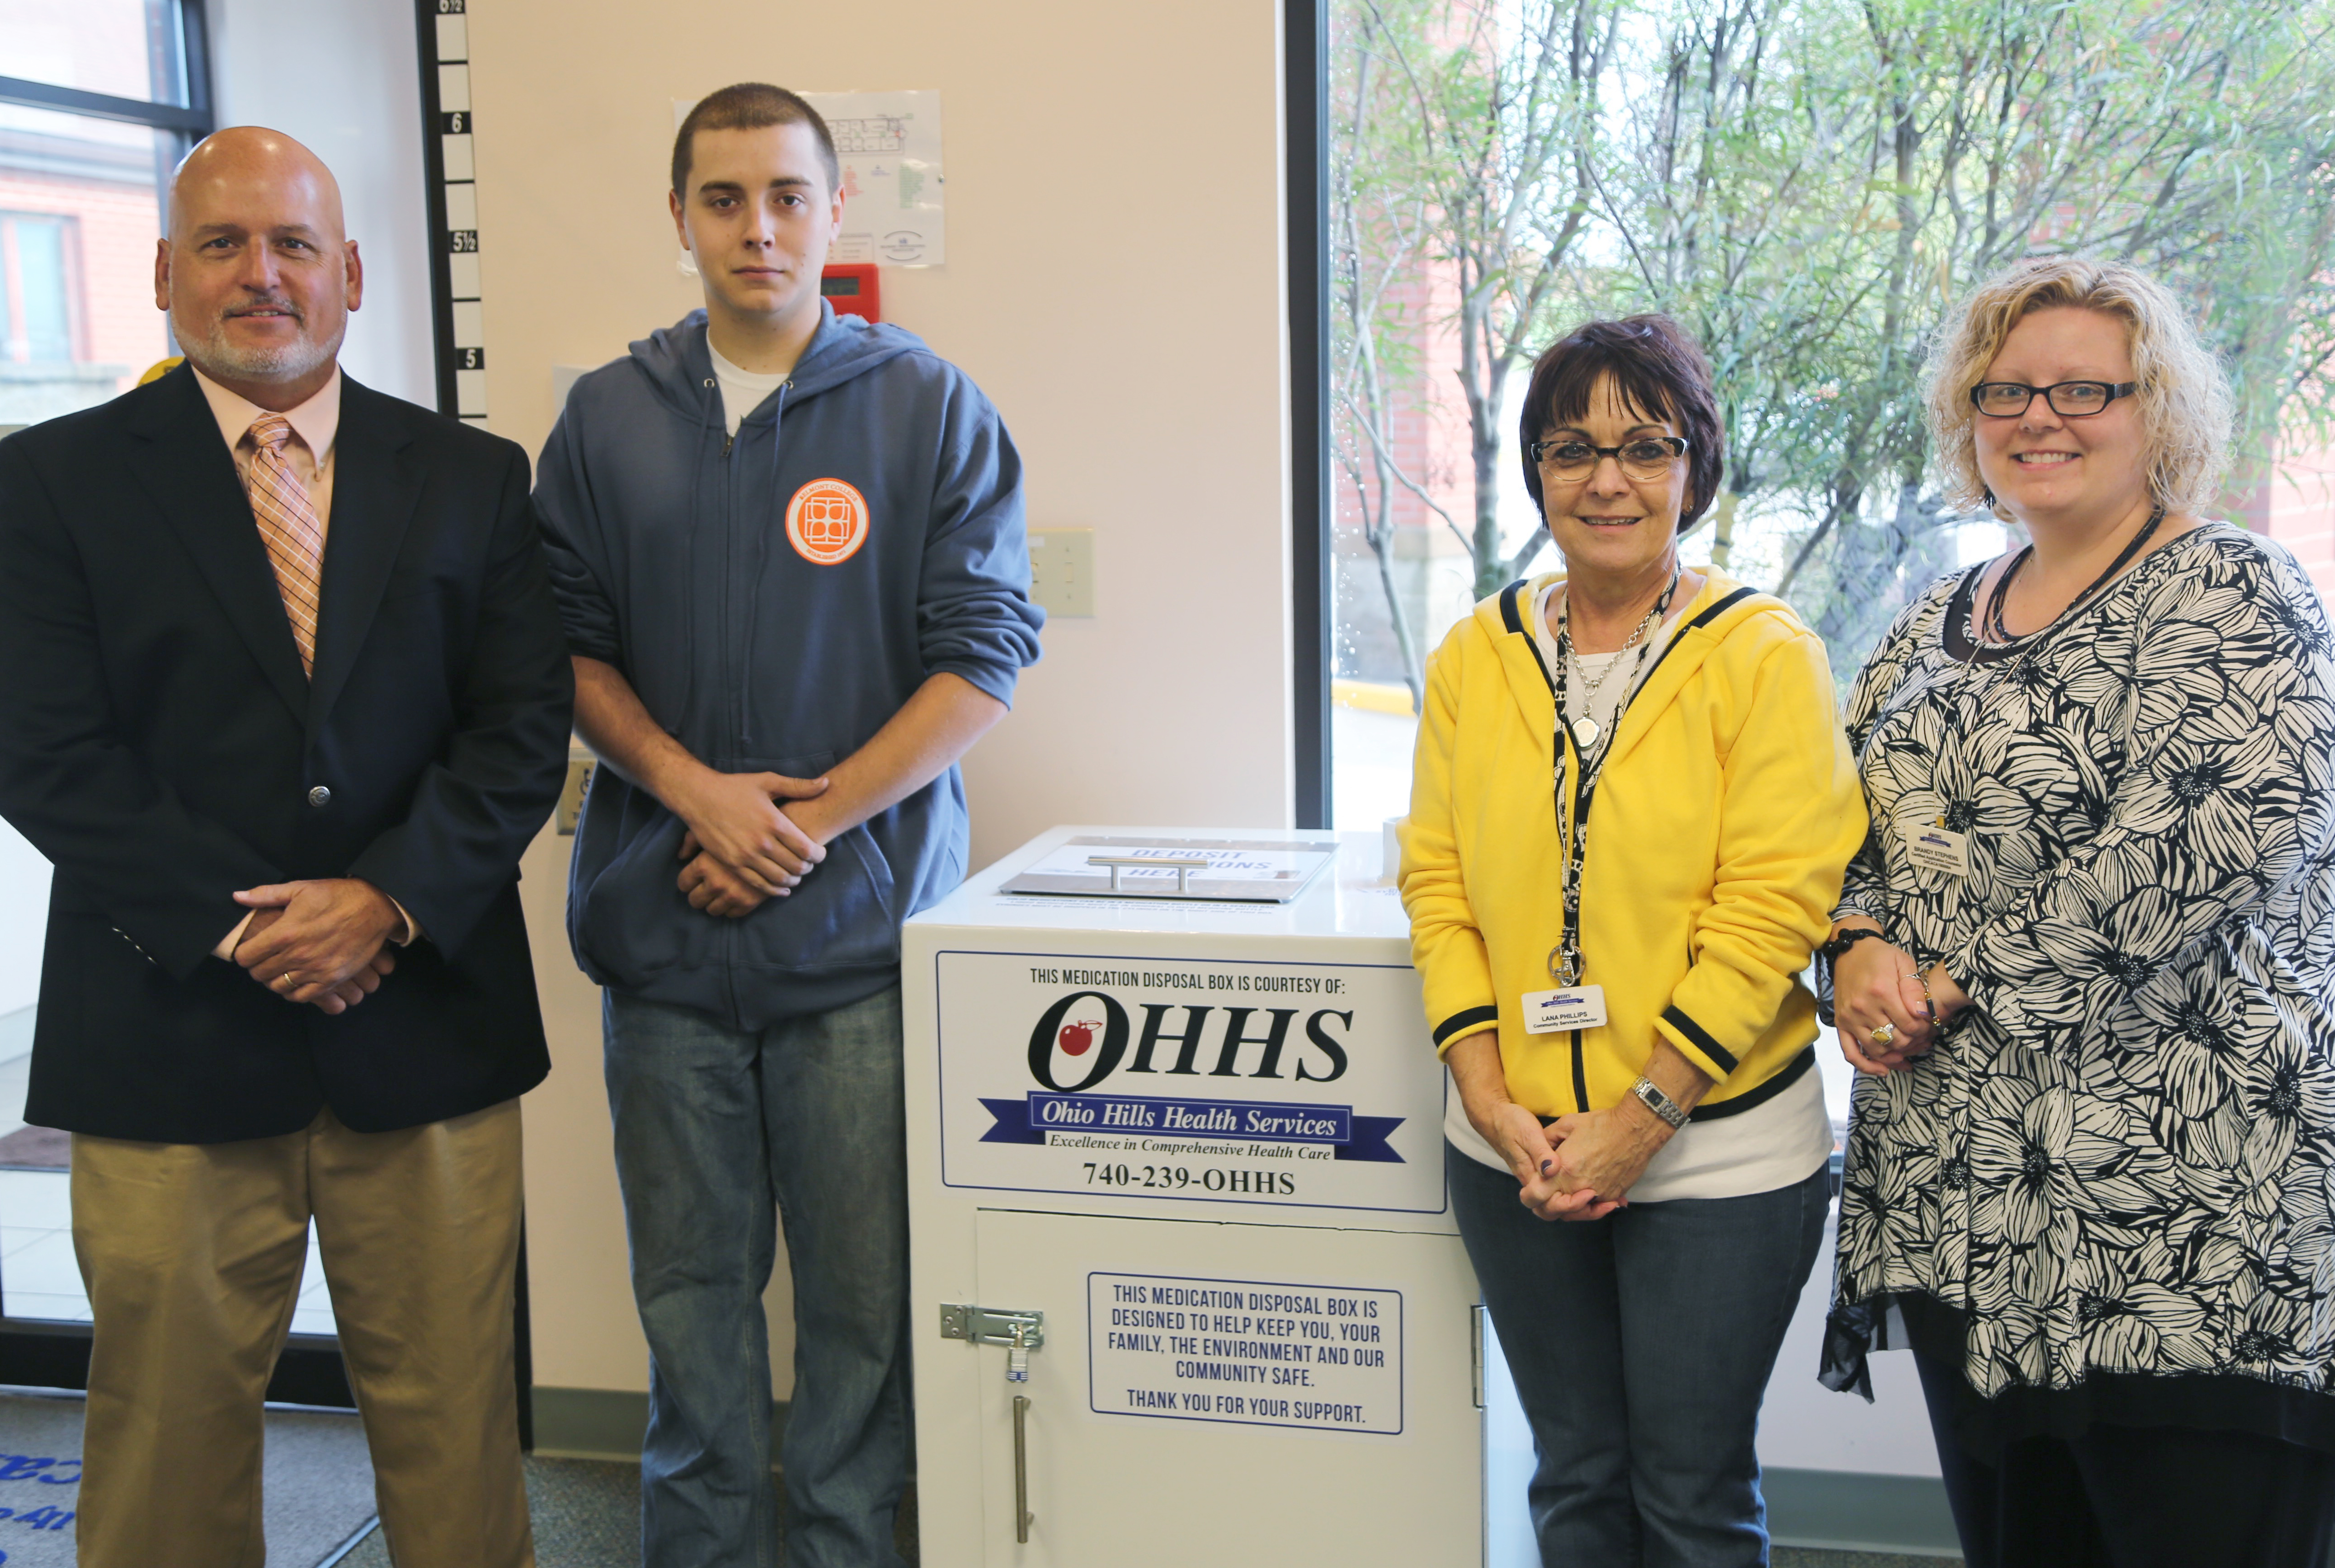 Photo caption: (from left to right) One of the most recently completed drug drop-off boxes was delivered to Morristown Pharmacy in Morristown, Ohio. Dirk DeCoy, Director of Industrial Trades and Contract Training; Nick Tobin, Belmont College Welding student; Lana Phillips, Community Services Director, Ohio Hills Health Services; and Brandy Stephens, Certified Application Counselor, Ohio Hills Health Services.